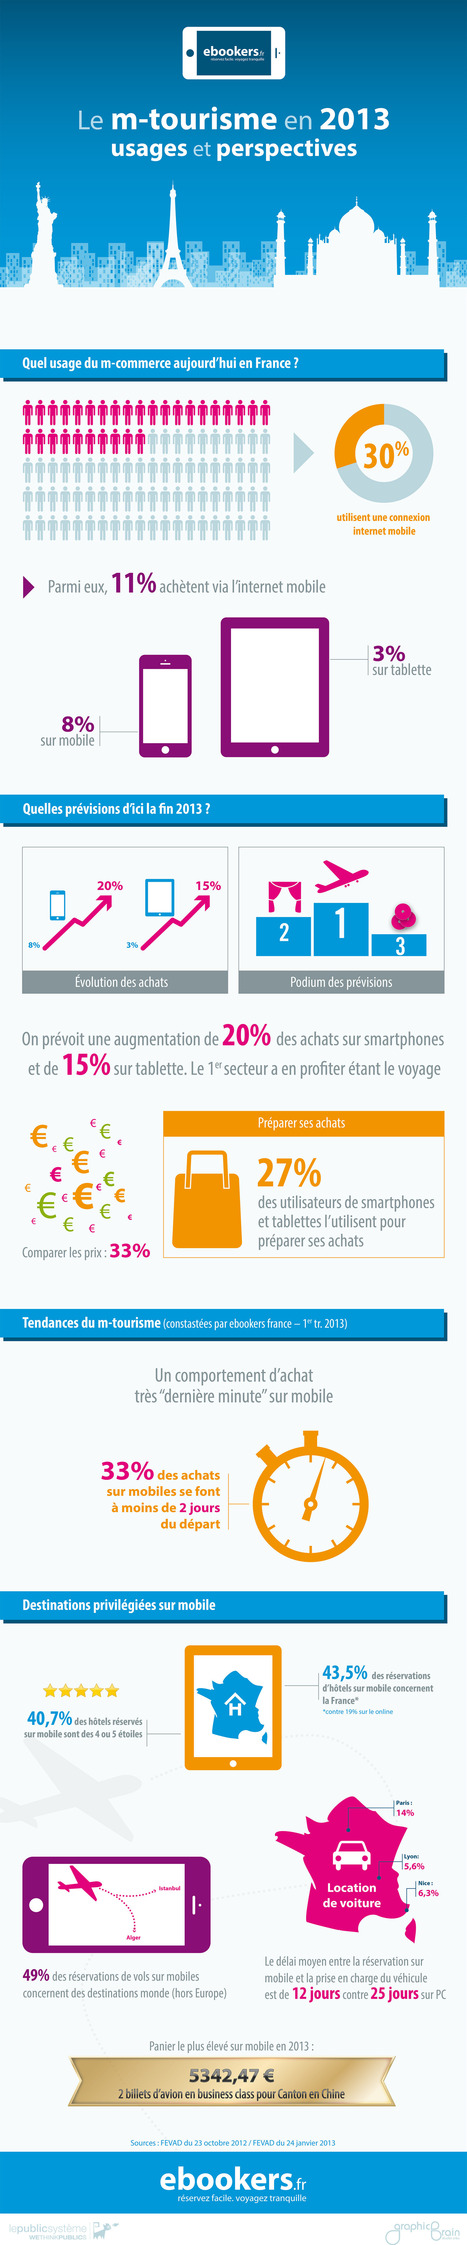 Le tourisme mobile en 2013 | Marketing & Technology | Scoop.it